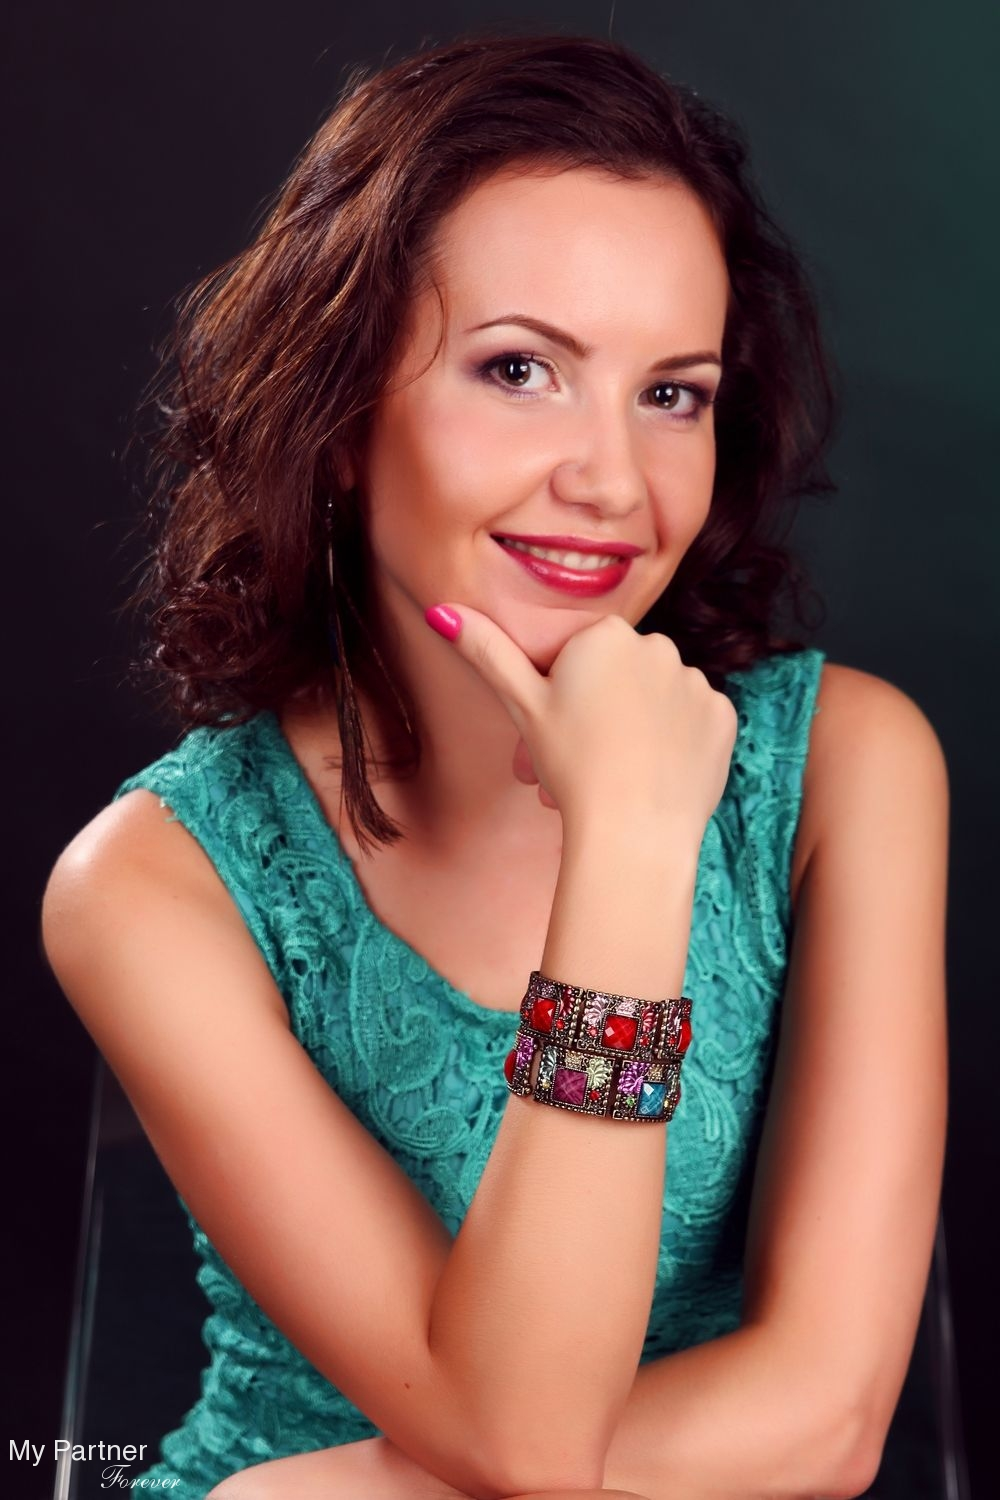 Datingsite to Meet Sexy Russian Woman Ekaterina from Novosibirsk, Russia